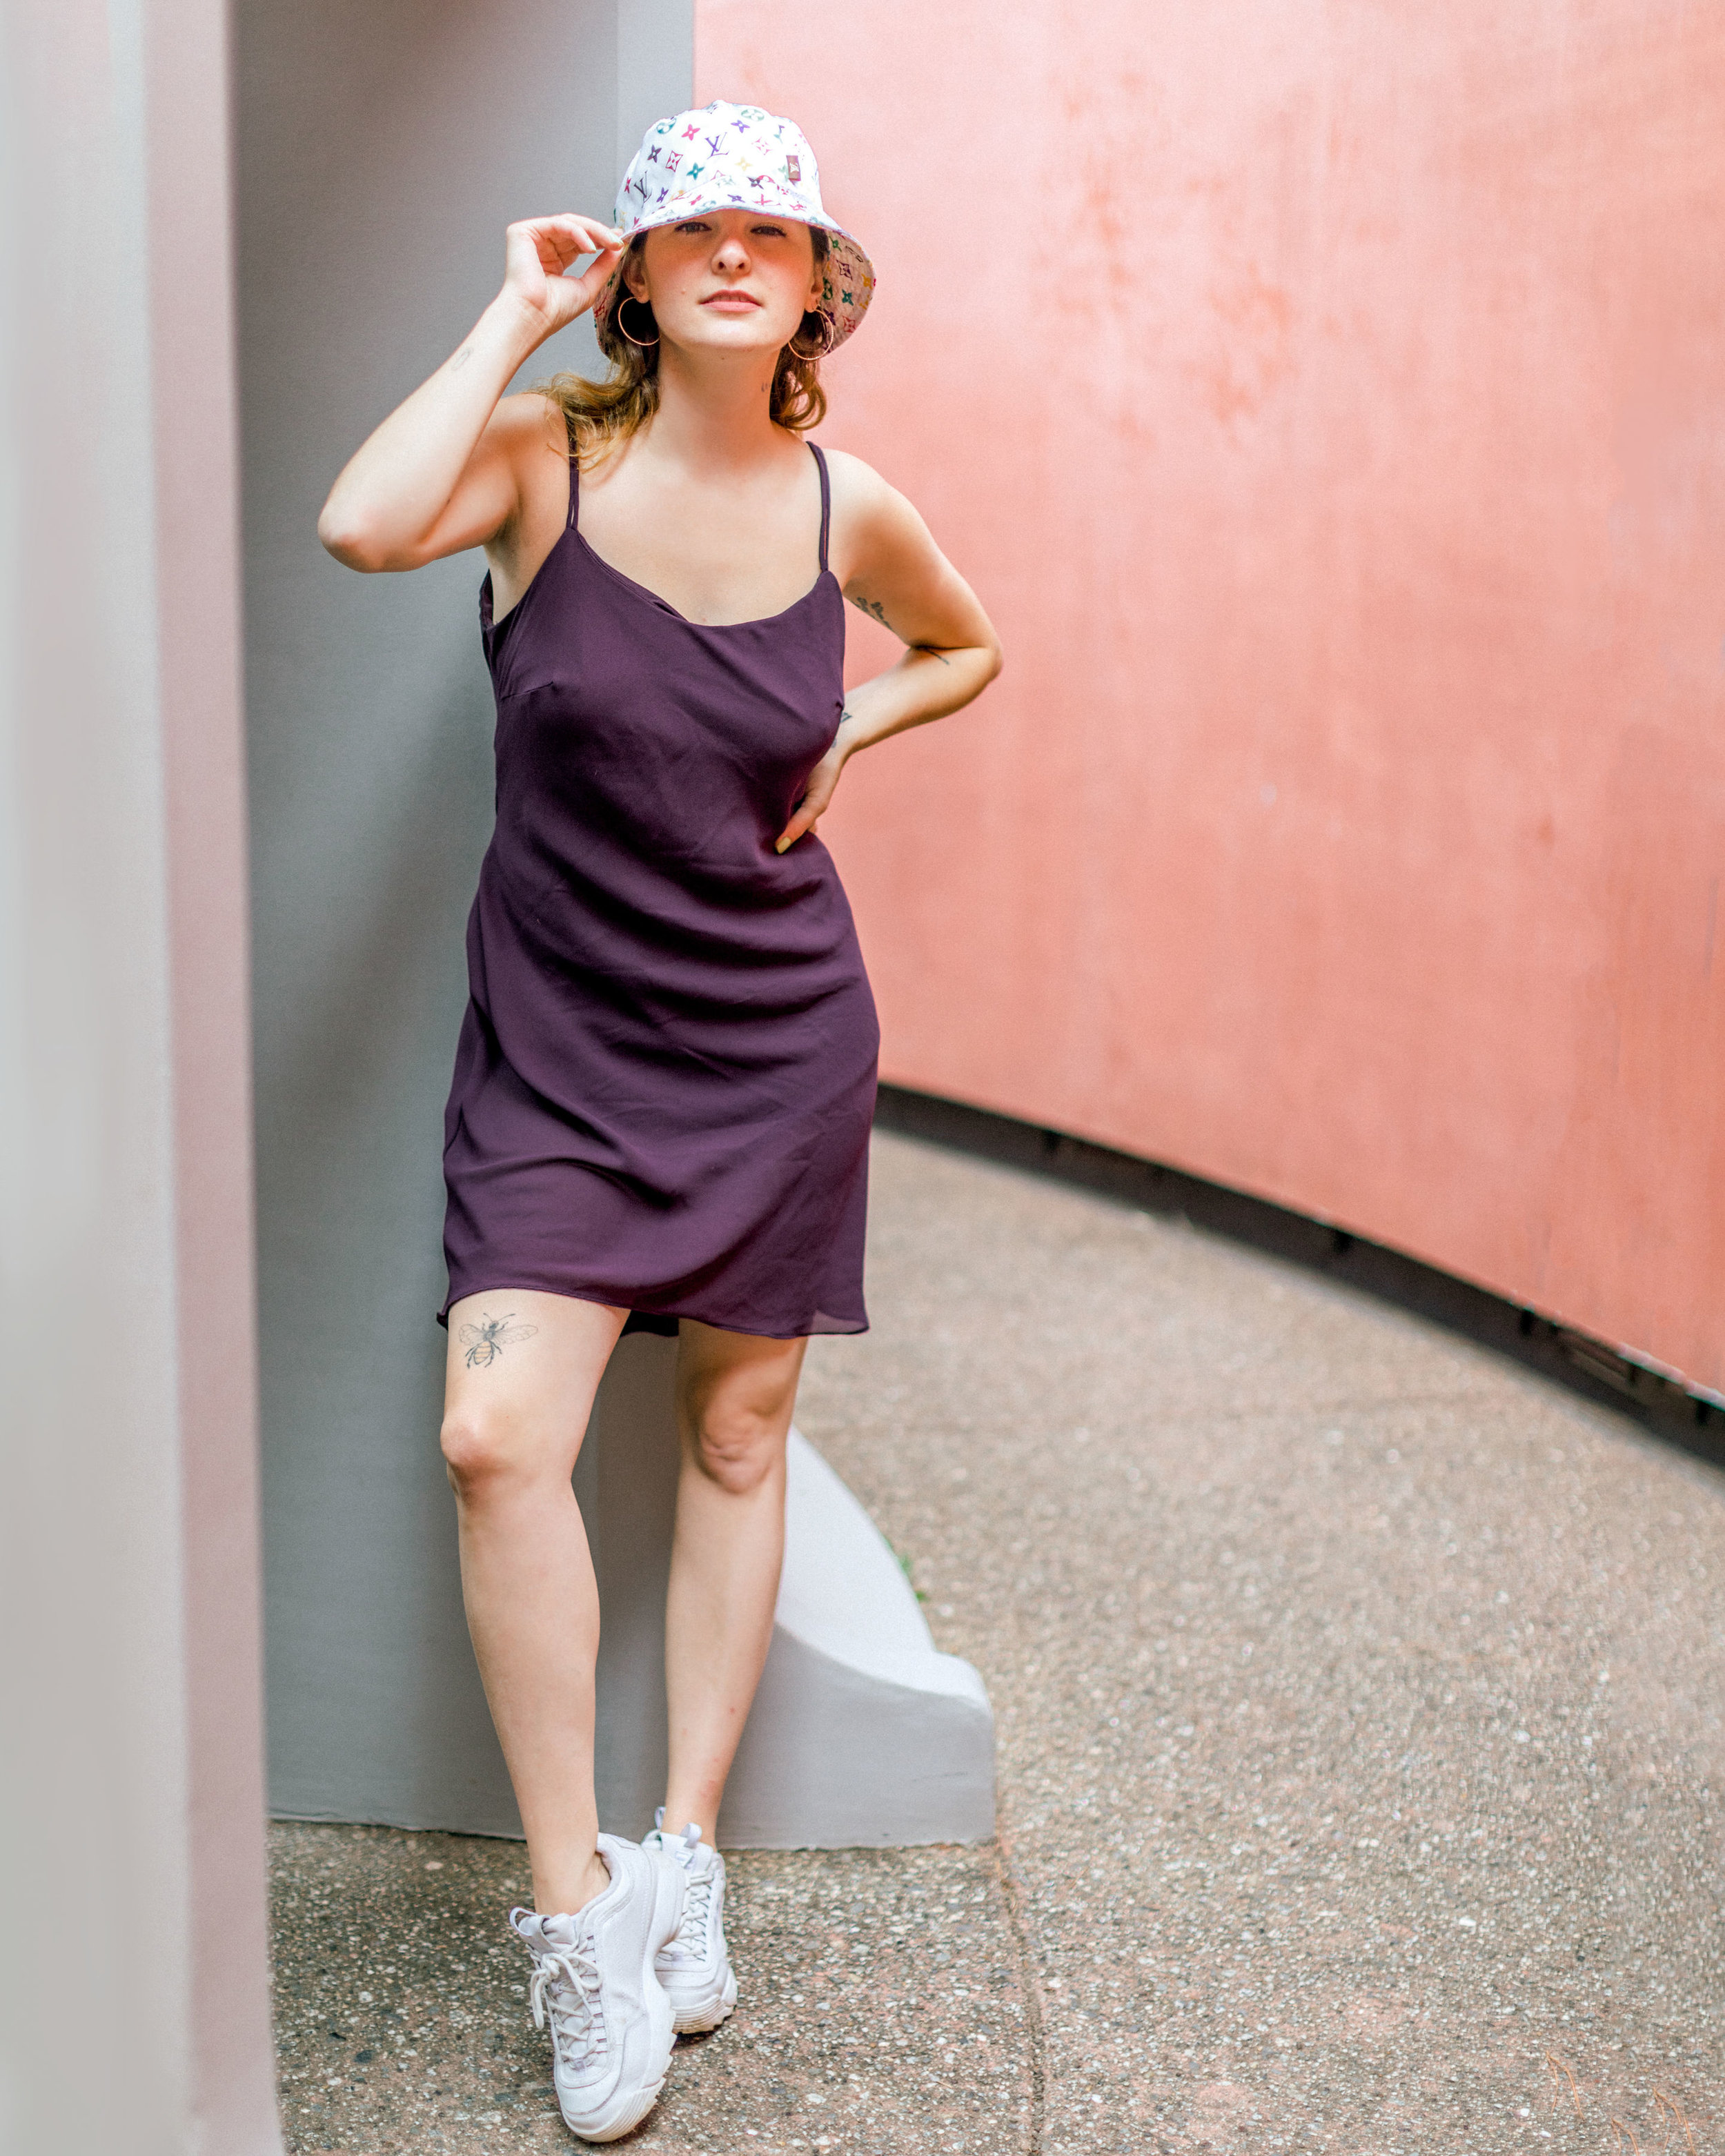 90s Revival Style in Slip Dresses and bucket hats